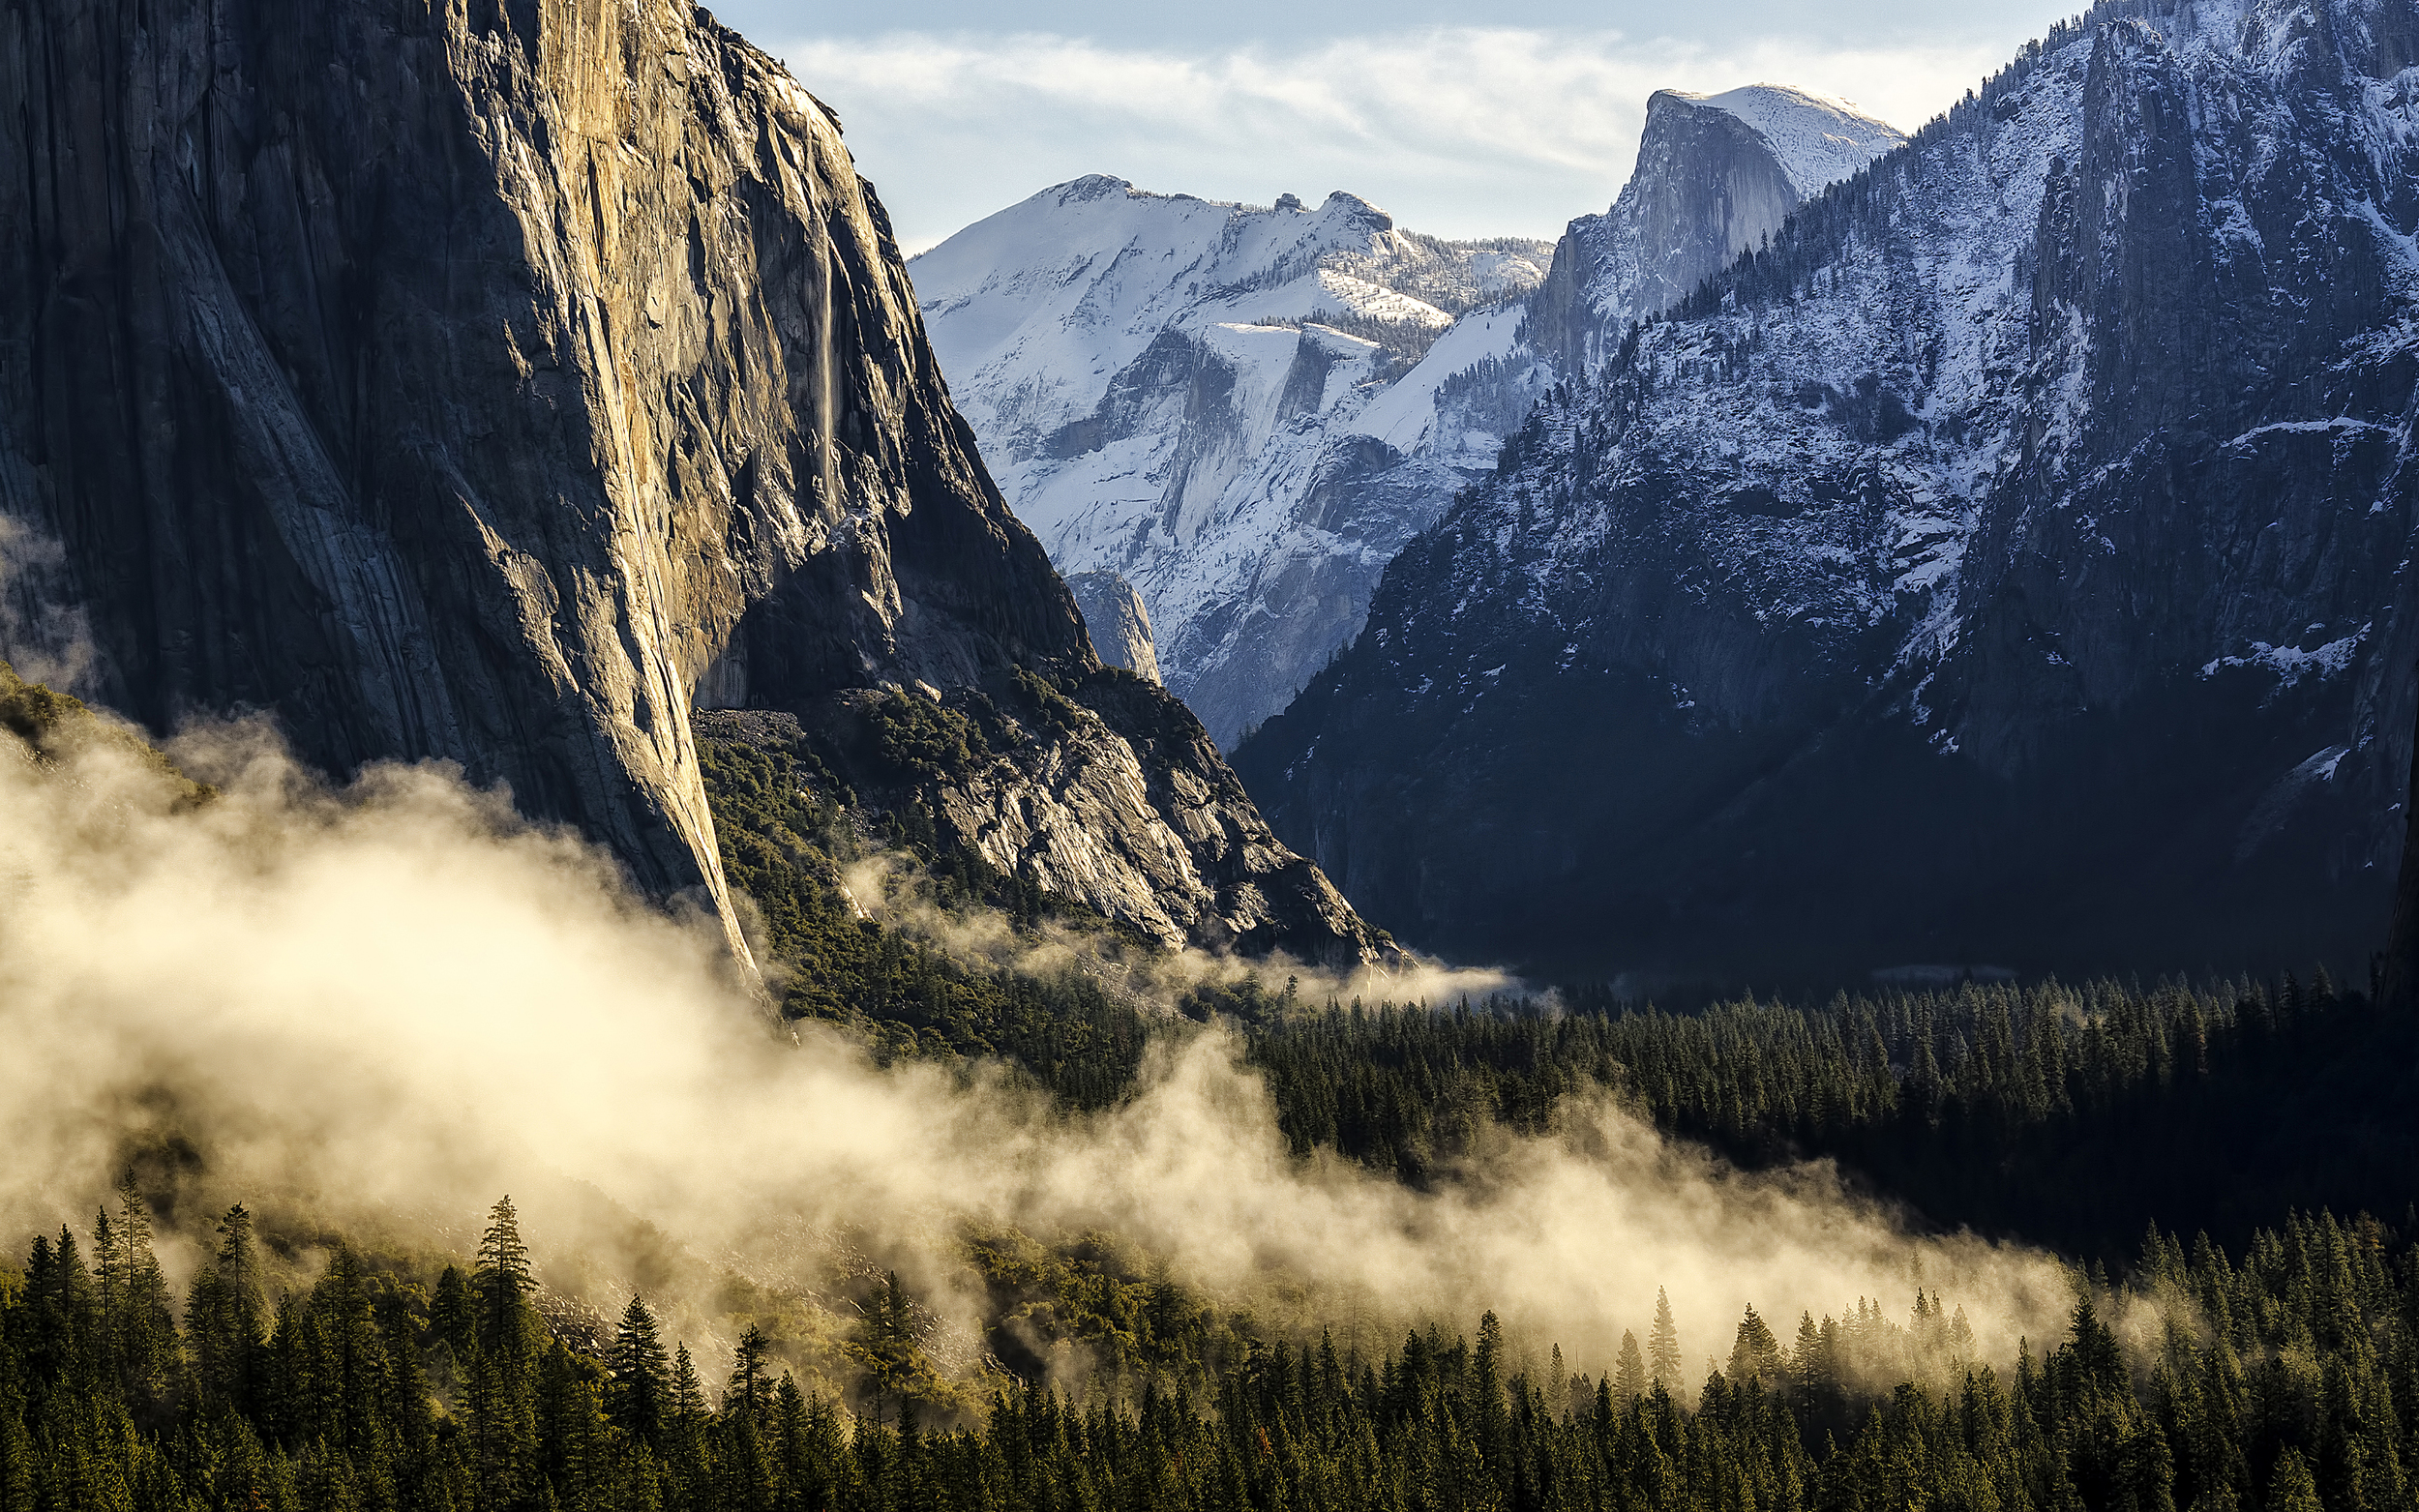 Wasim Muklashy Photography_OS X Yosemite_Tunnel View